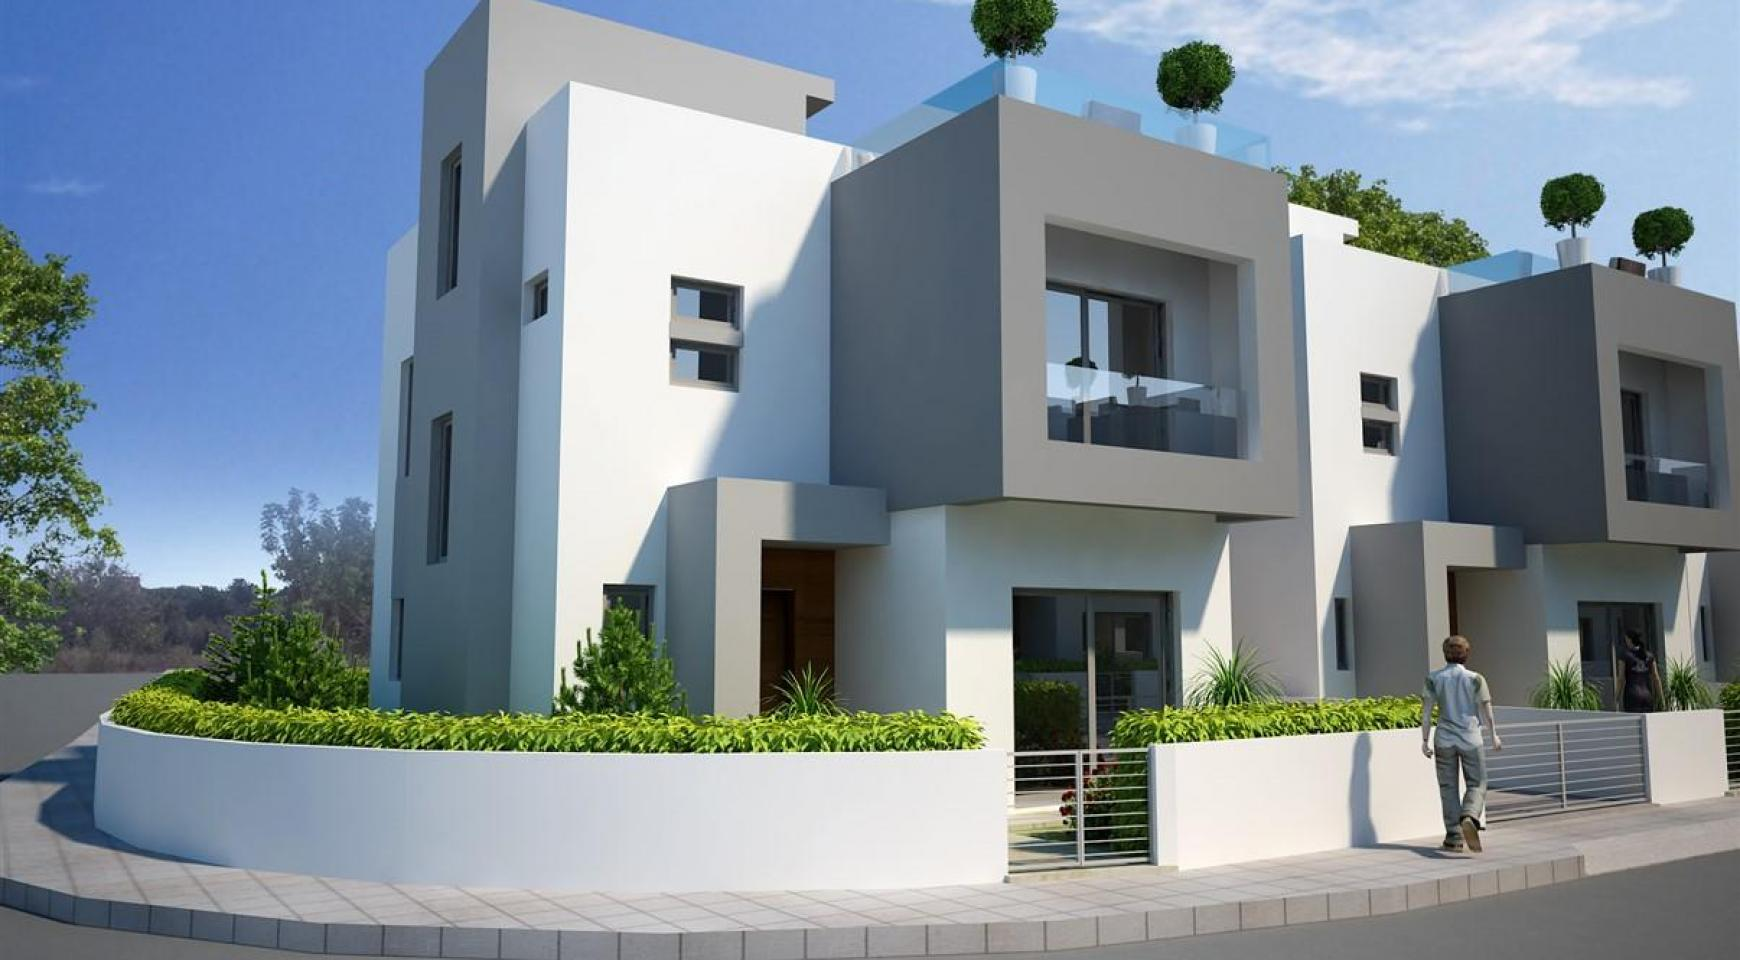 3 Bedroom Villa in New Project in Paphos - 27